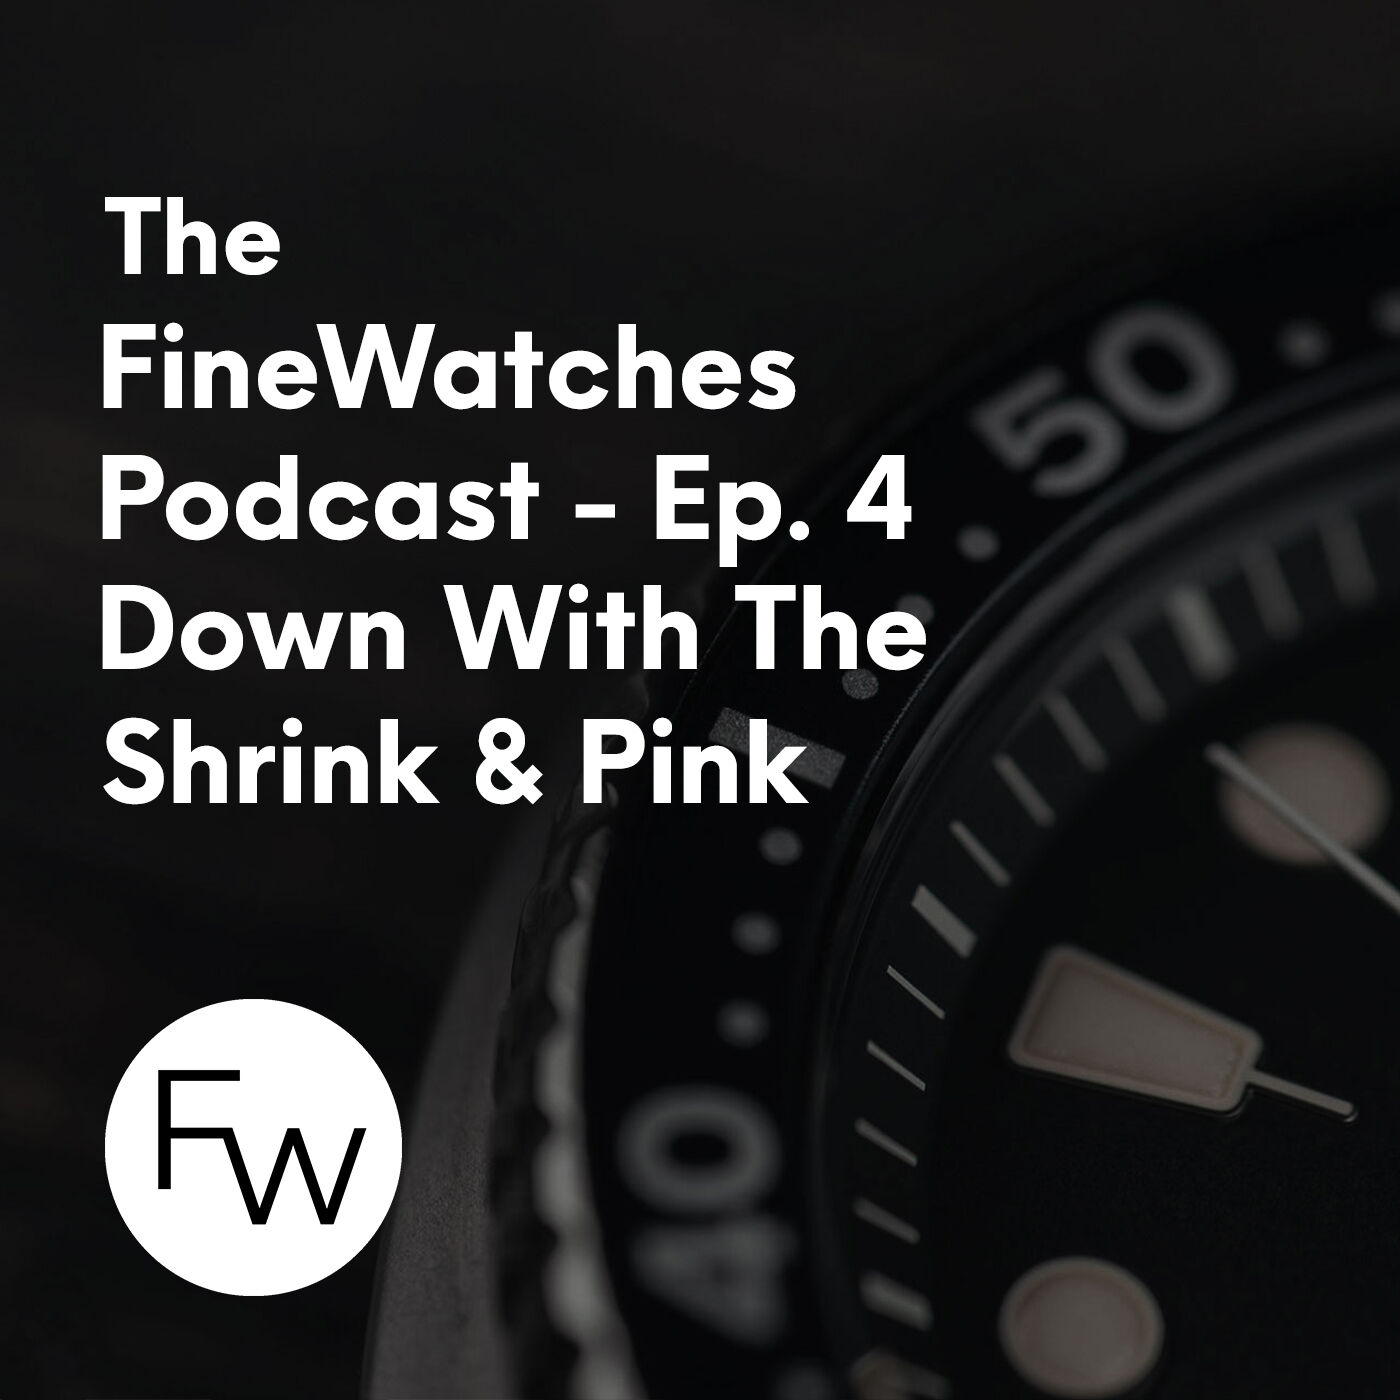 Down With The Shrink And Pink - Barbara Palumbo of What's On Her Wrist